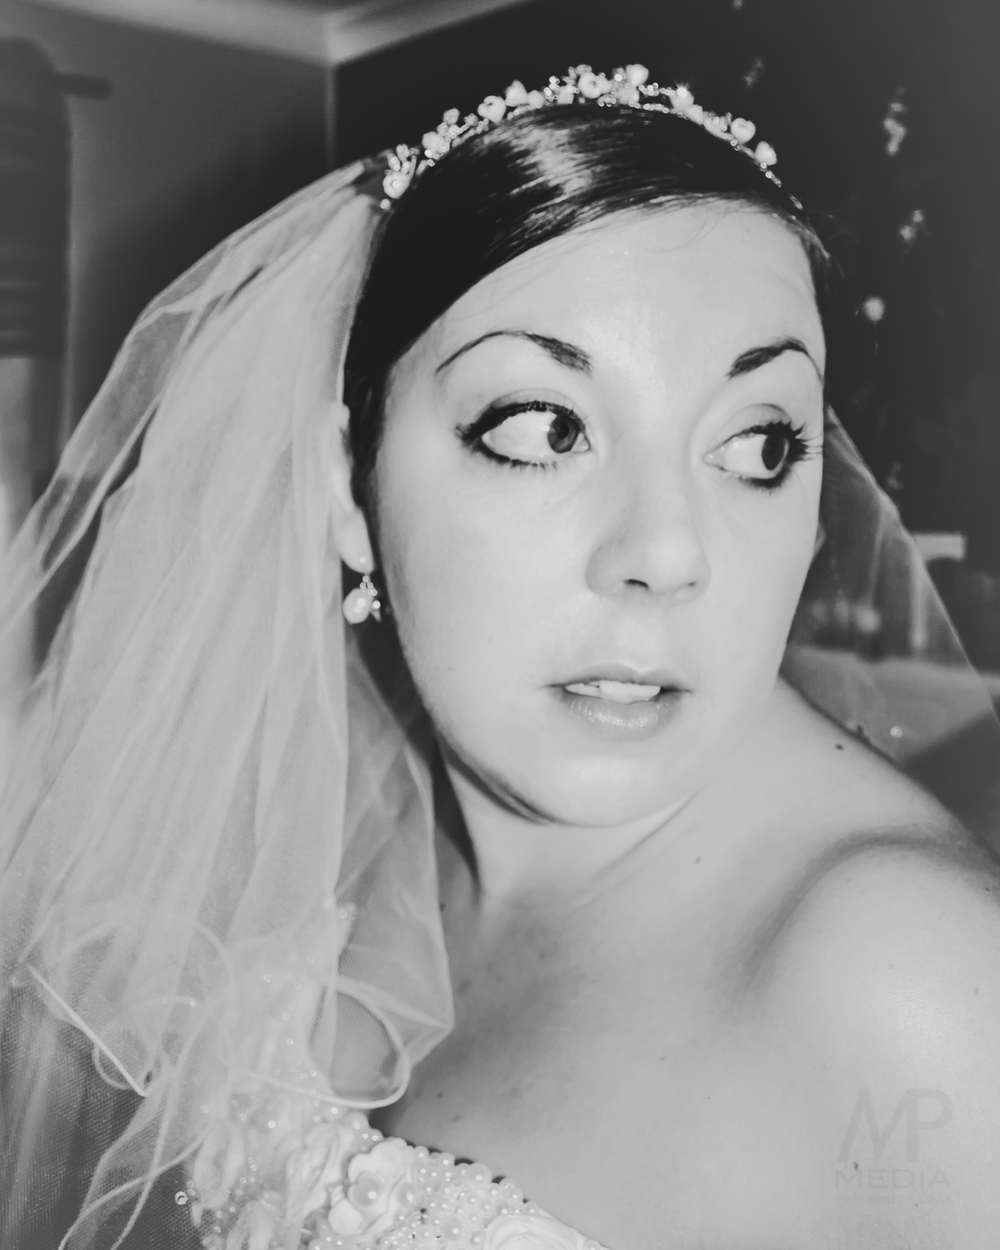 112 - Chris and Natalies Wedding (MAIN) - DO NOT SHARE THIS IMAGES ONLINE -4328.JPG